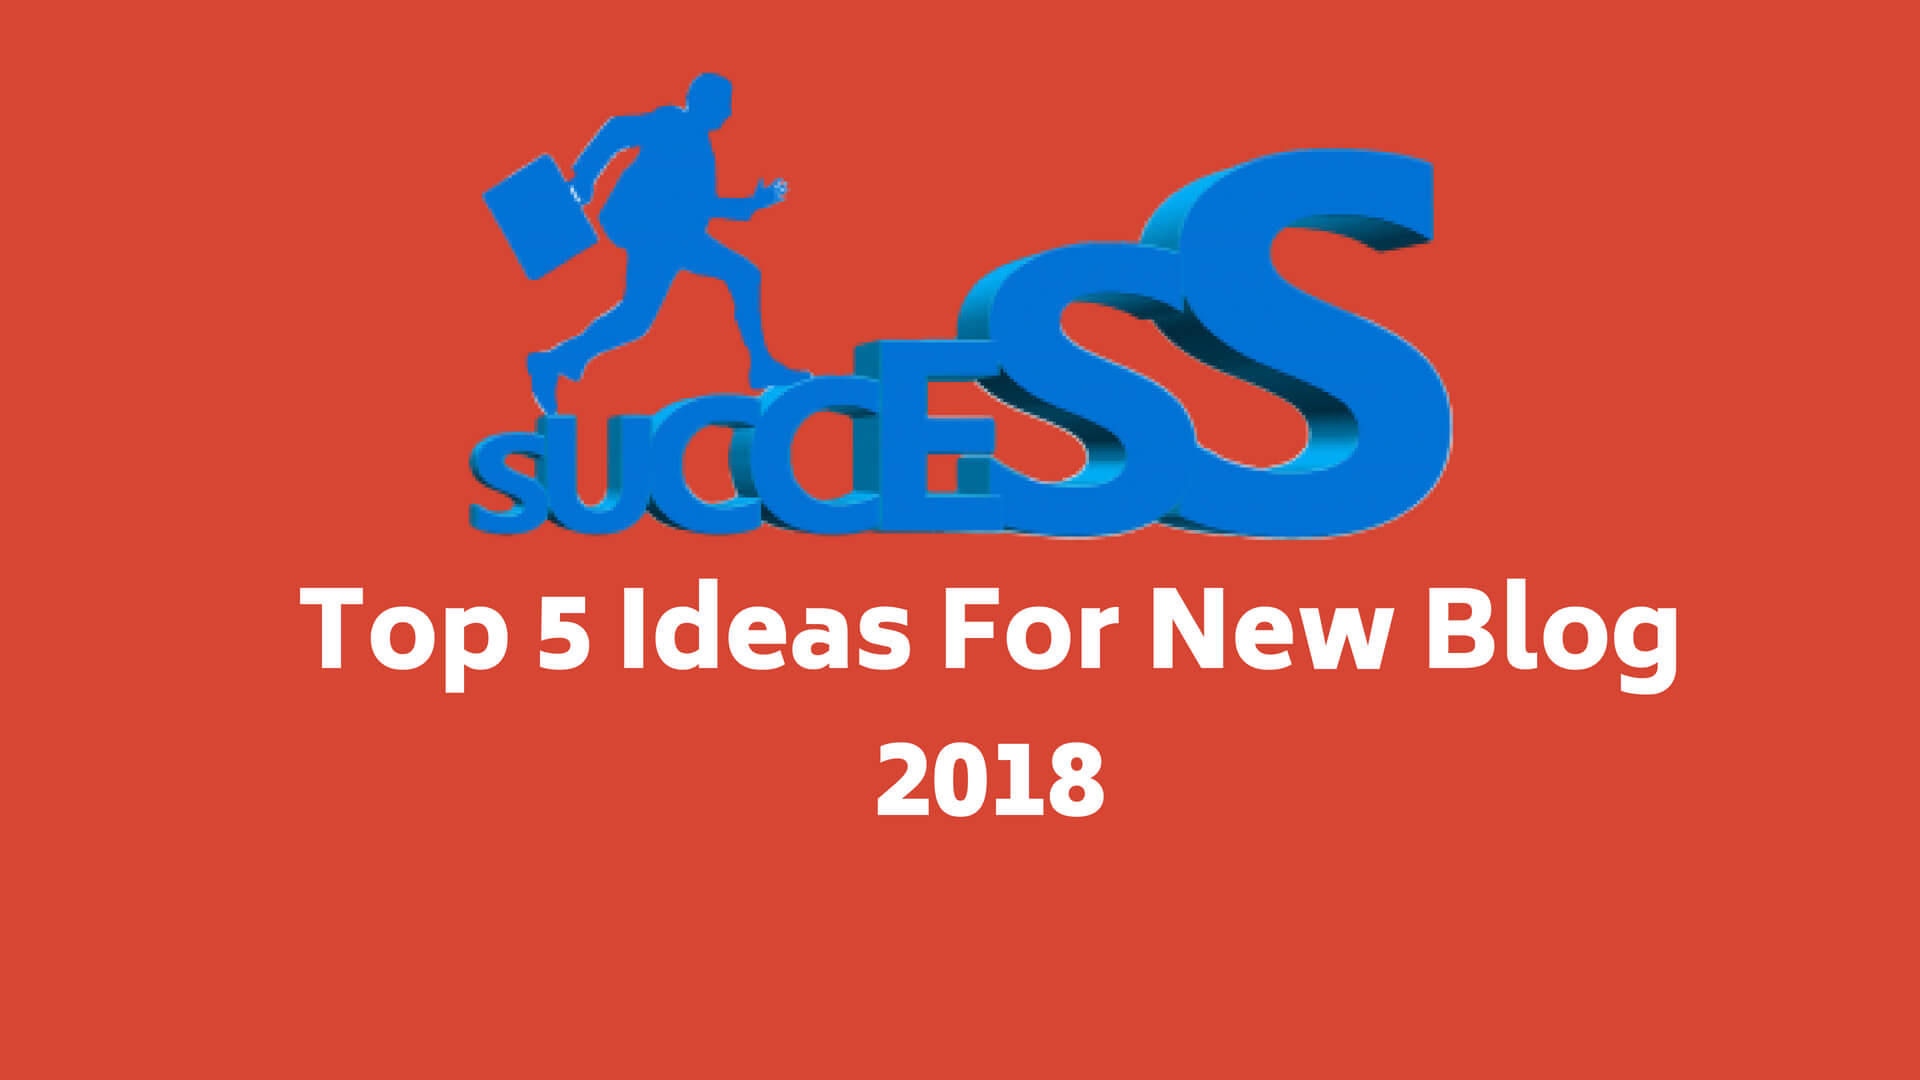 Top 5 Ideas For New Blog